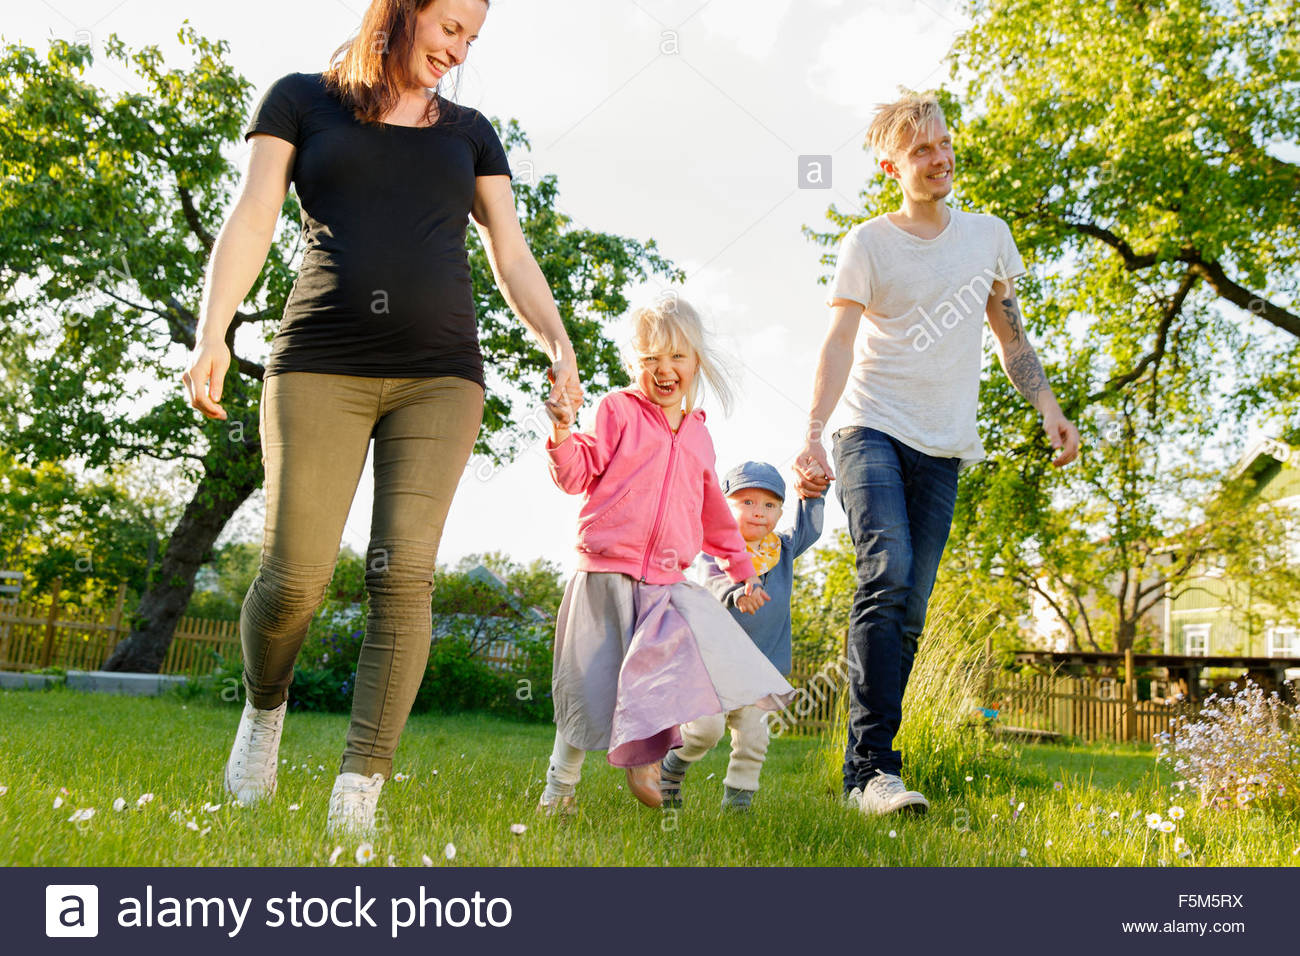 Sweden, Sodermanland, Jarna, Family with two children (12-17 months, 4-5) in garden - Stock Image